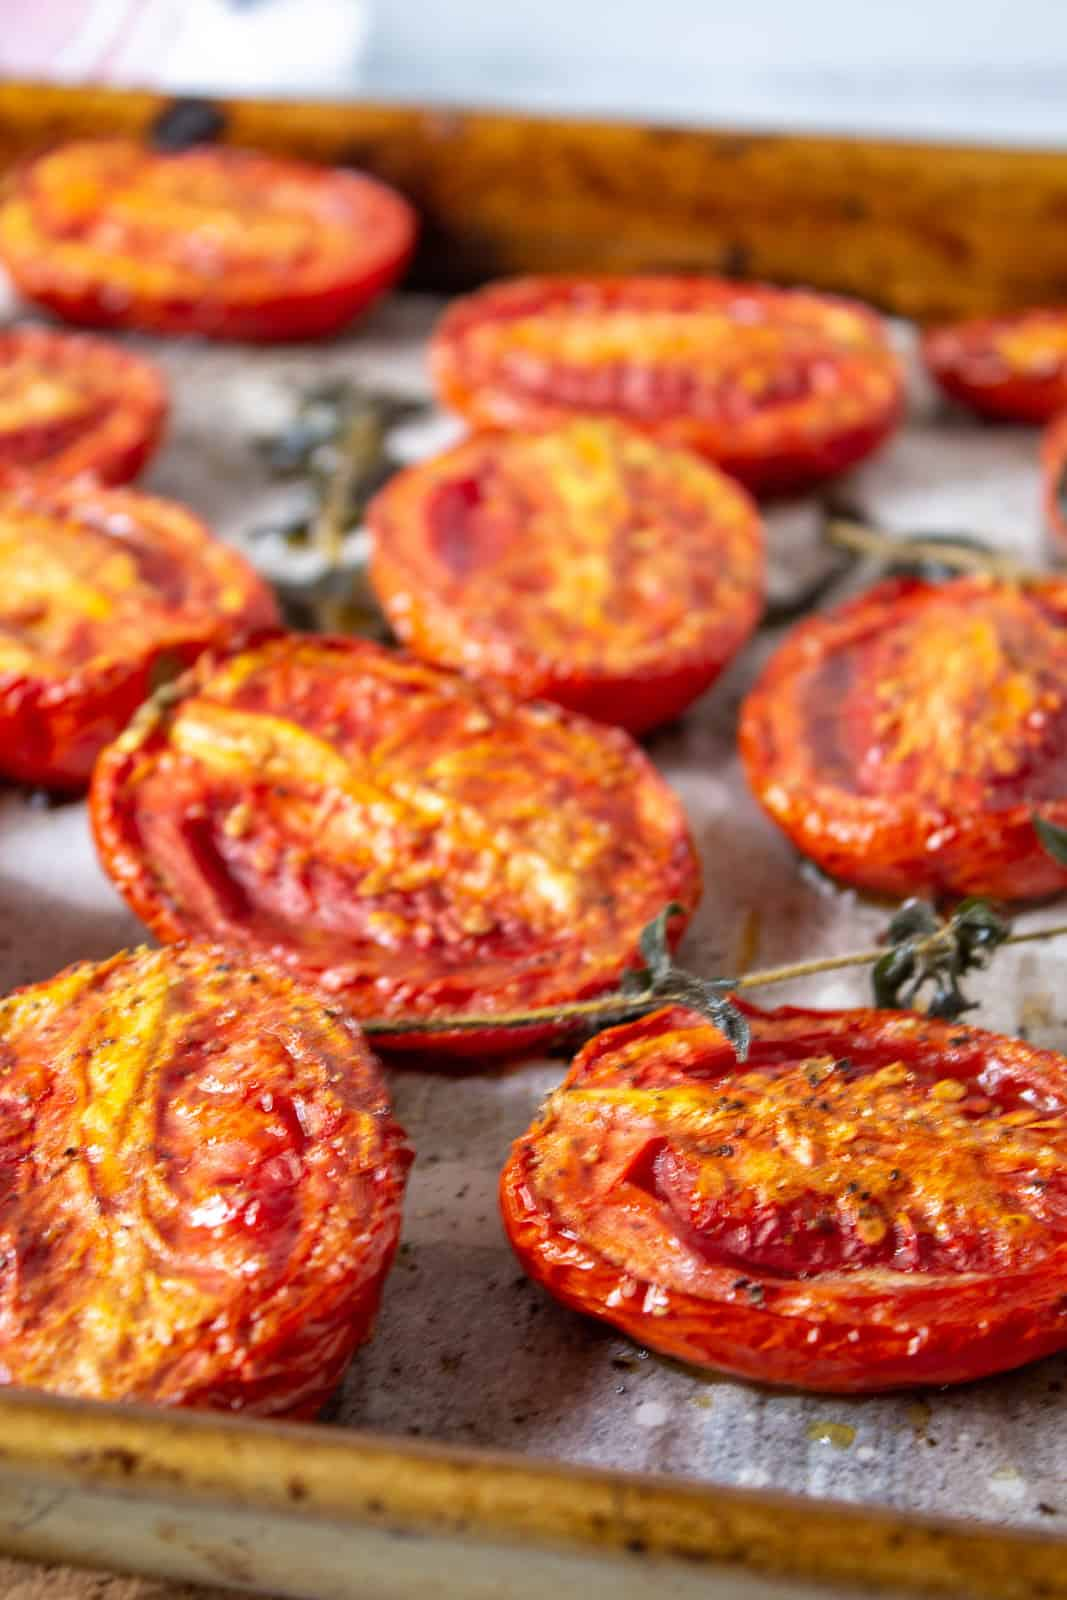 A tray full of oven roasted tomatoes.